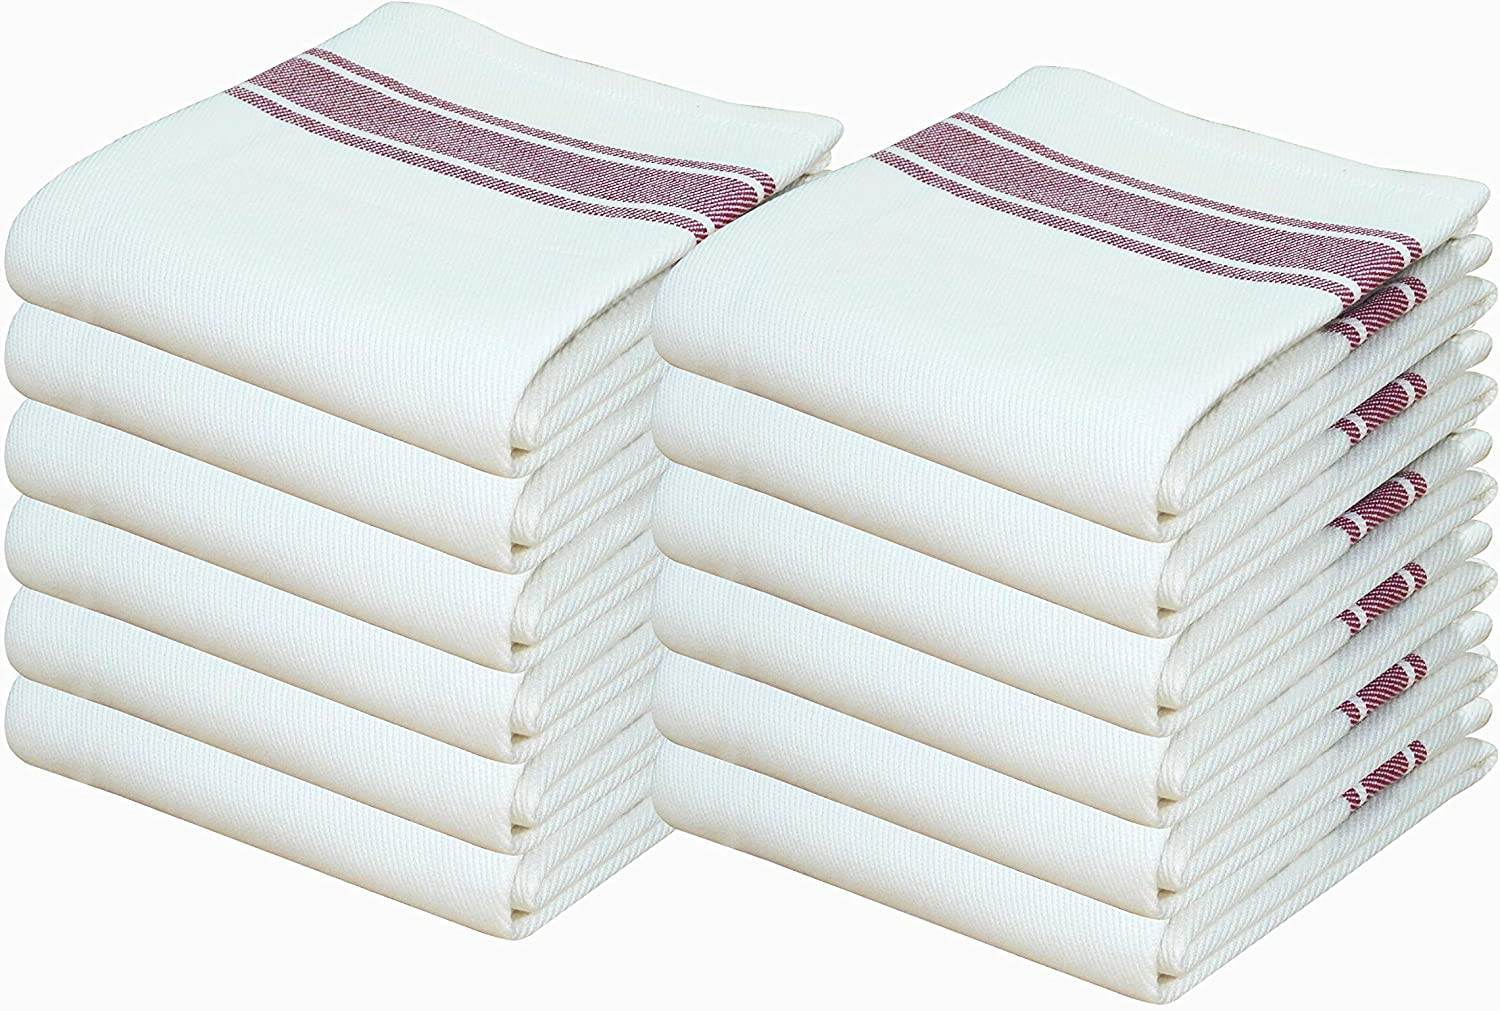 Tiny Break Kitchen Towels,100/% Cotton Value Pack of Dish Cloth Towels 12 Pack 27 x 17 inch White with Blue Stripe Absorbent /& Quick Dry Tea Towels